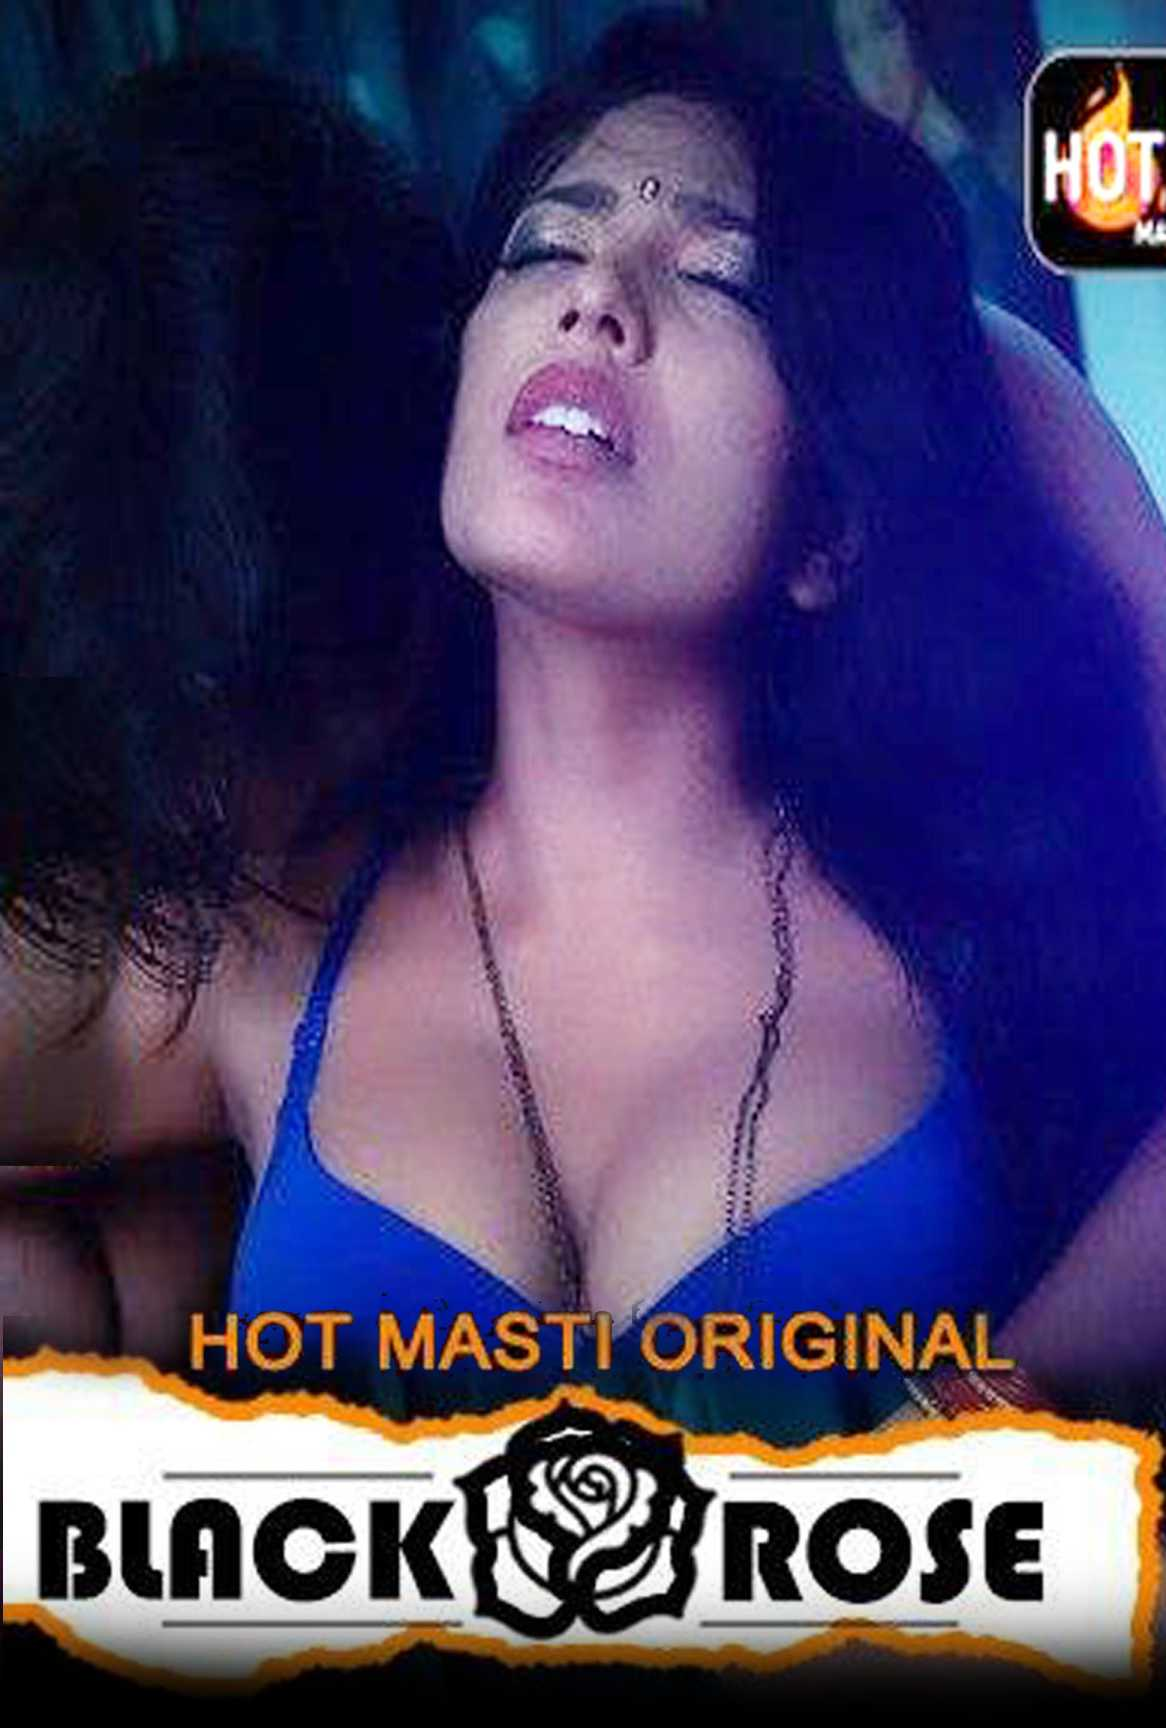 Black Rose (2020) S01E02 Hindi HotMasti Original Web Series 720p HDRip 160MB Download